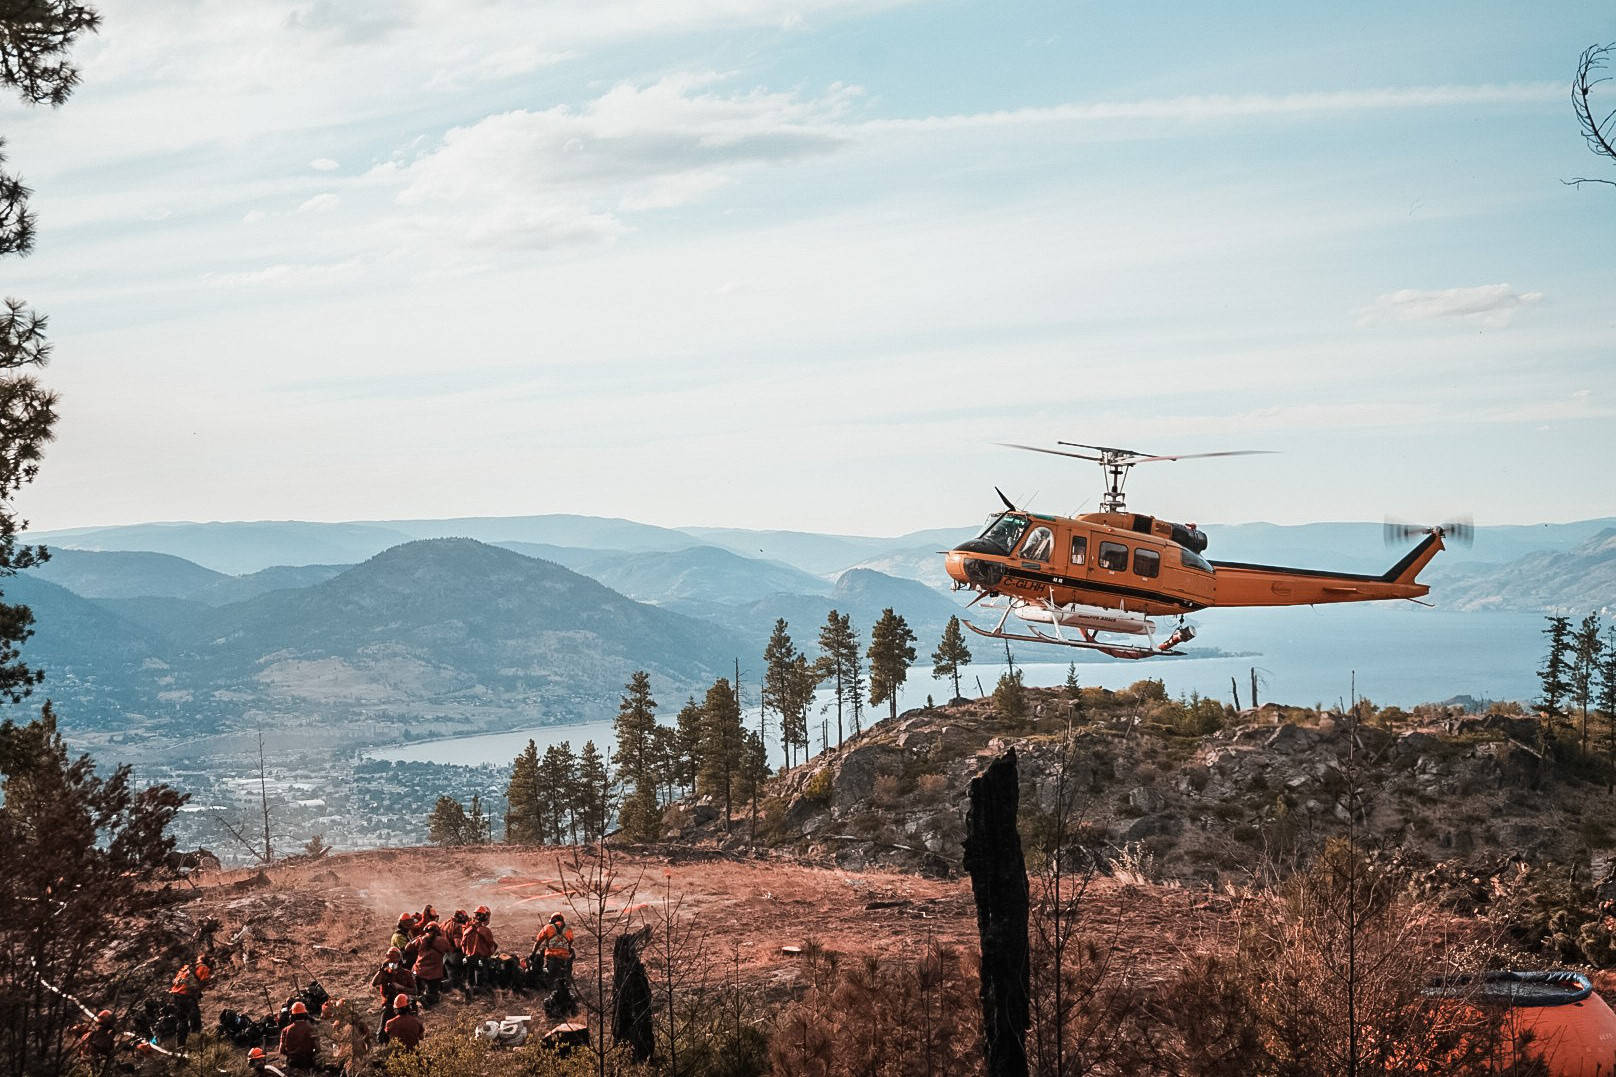 A helicopter flies near the Christie Mountain wildfire near Penticton. (BC Wildfire Service)